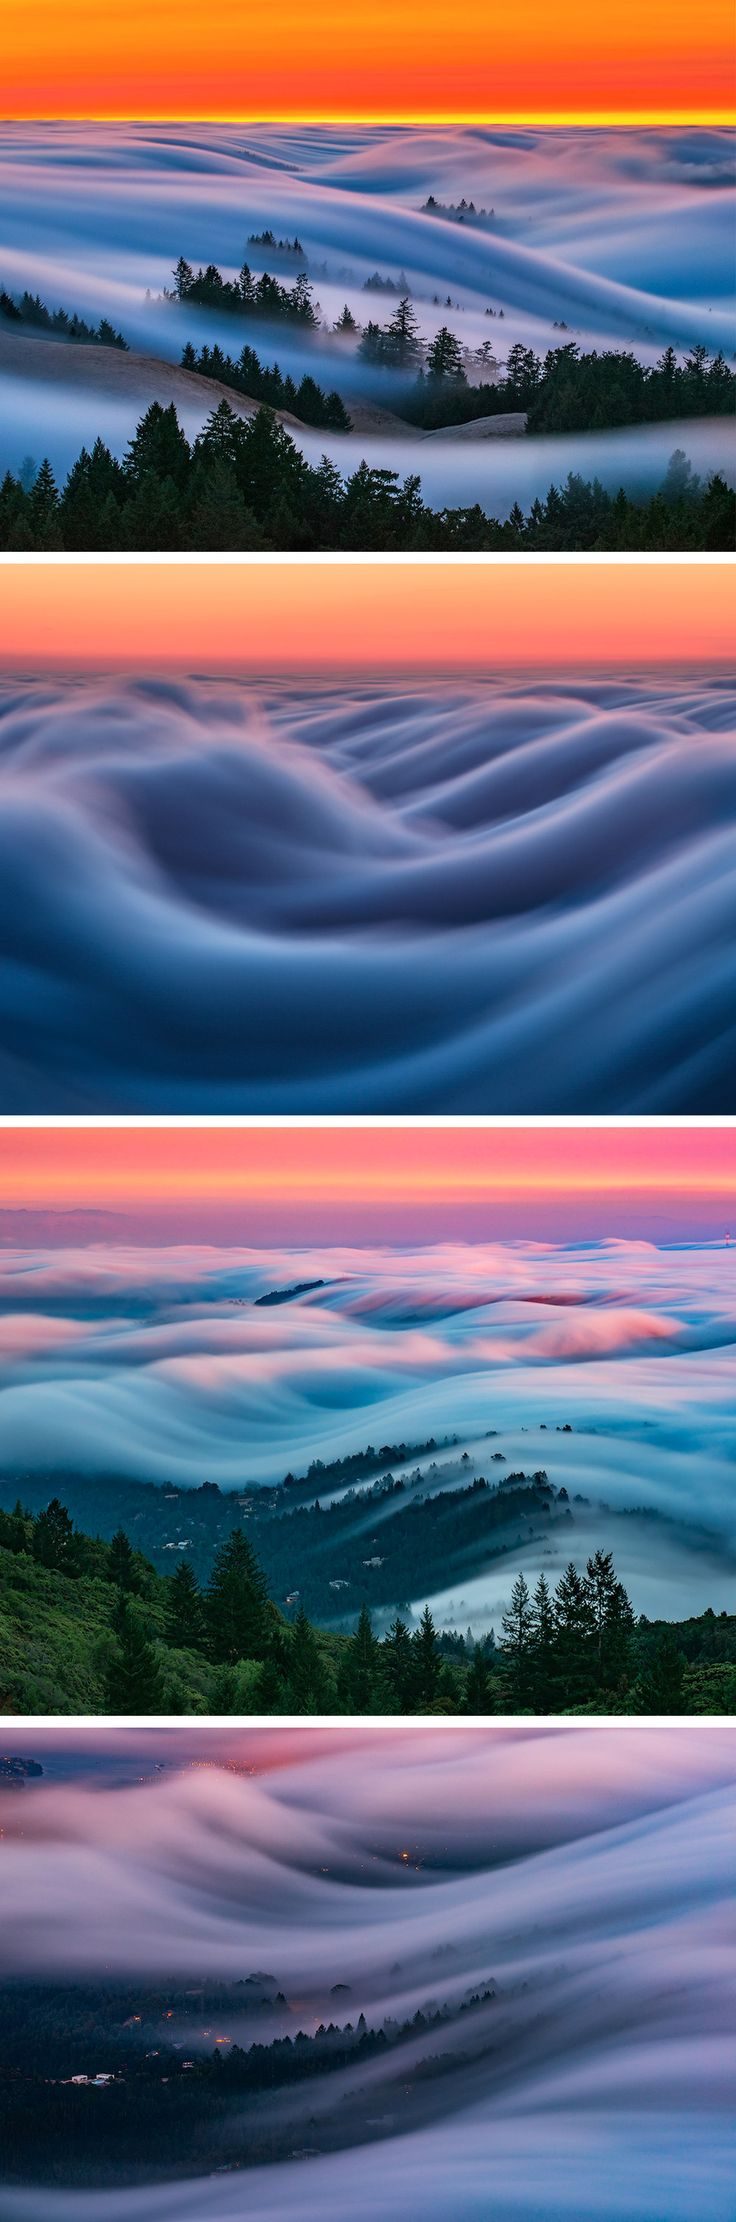 Rolling Images of San Francisco's Fog Against Neon Skies Shot by Nick Steinberg